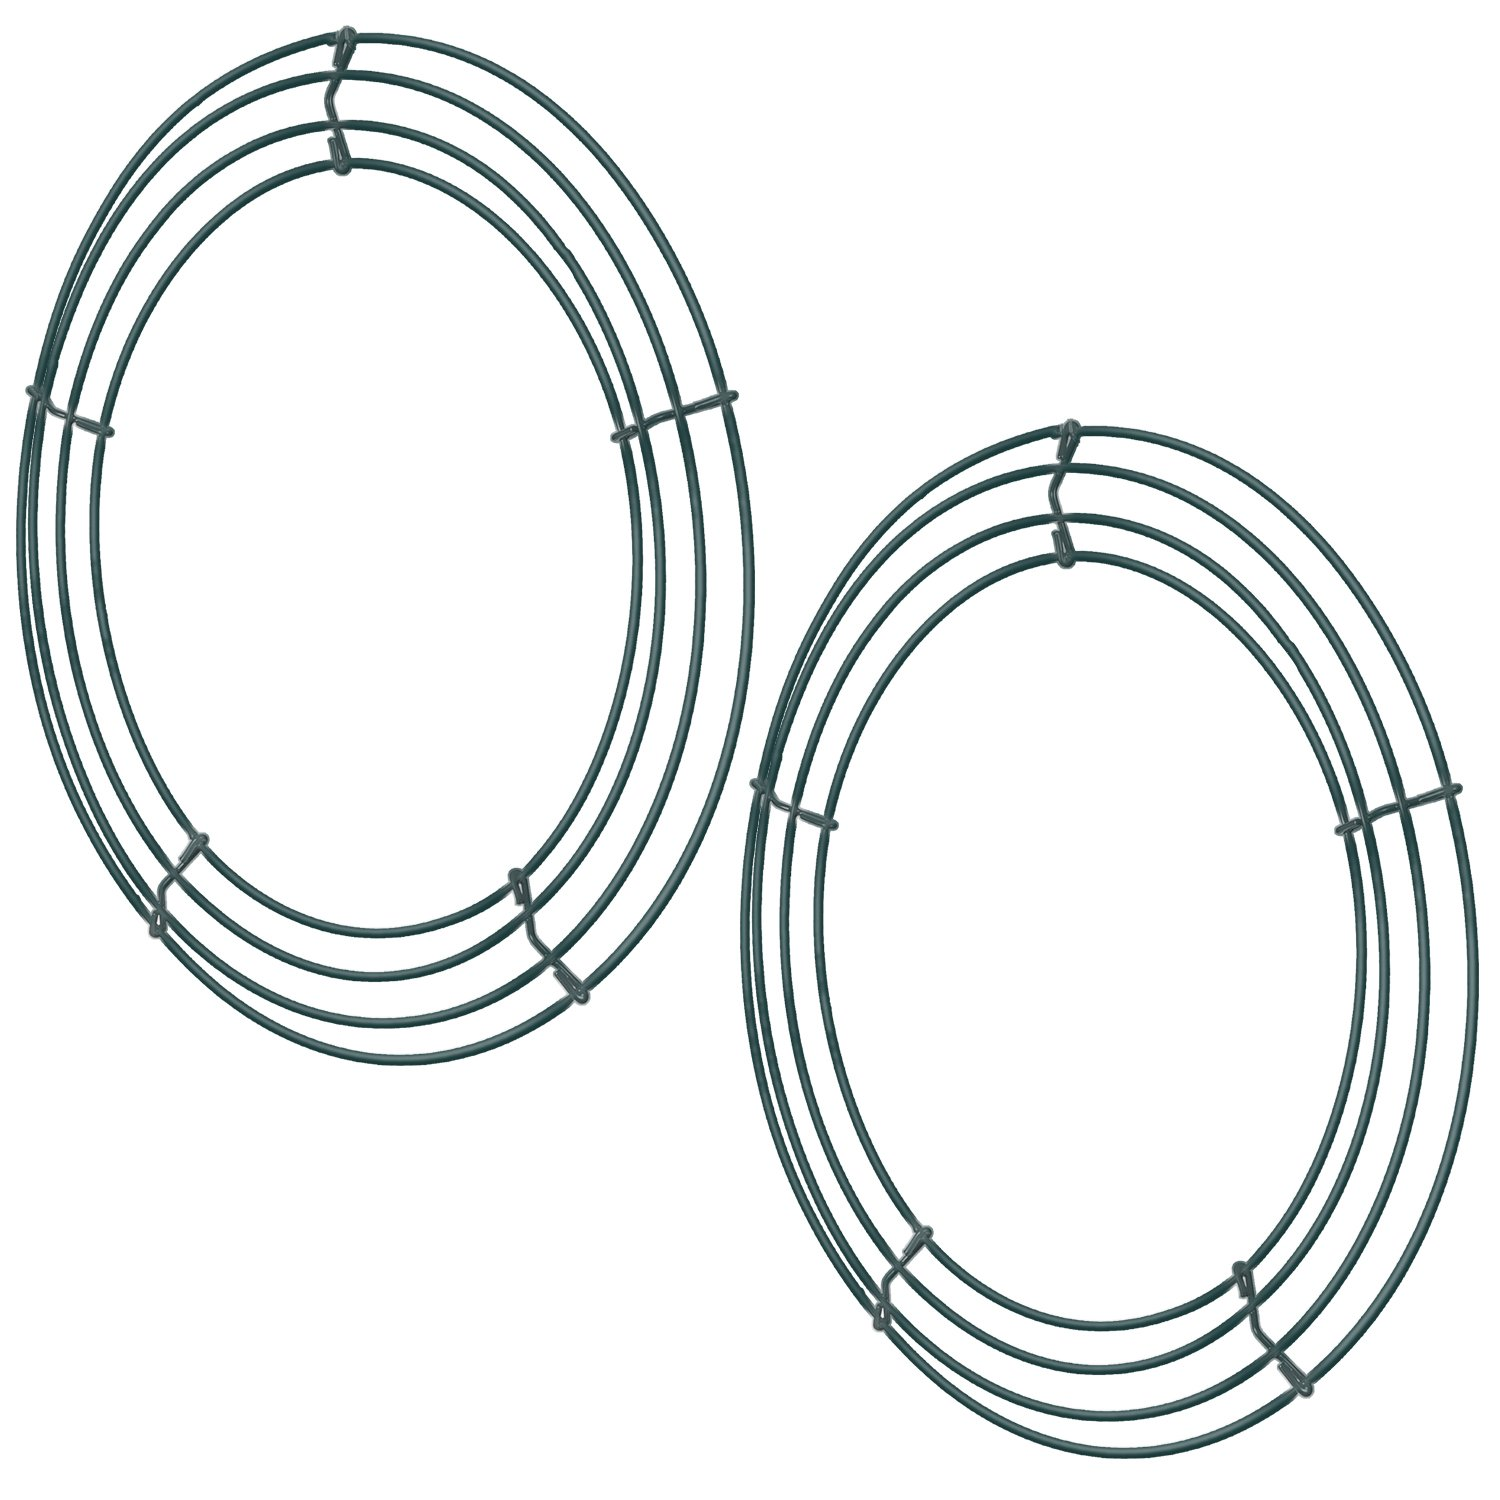 Sumind 2 Pack Wire Wreath Frame Wire Wreath Making Rings Green for New Year Valentines Decoration (12 inch) 4336863172